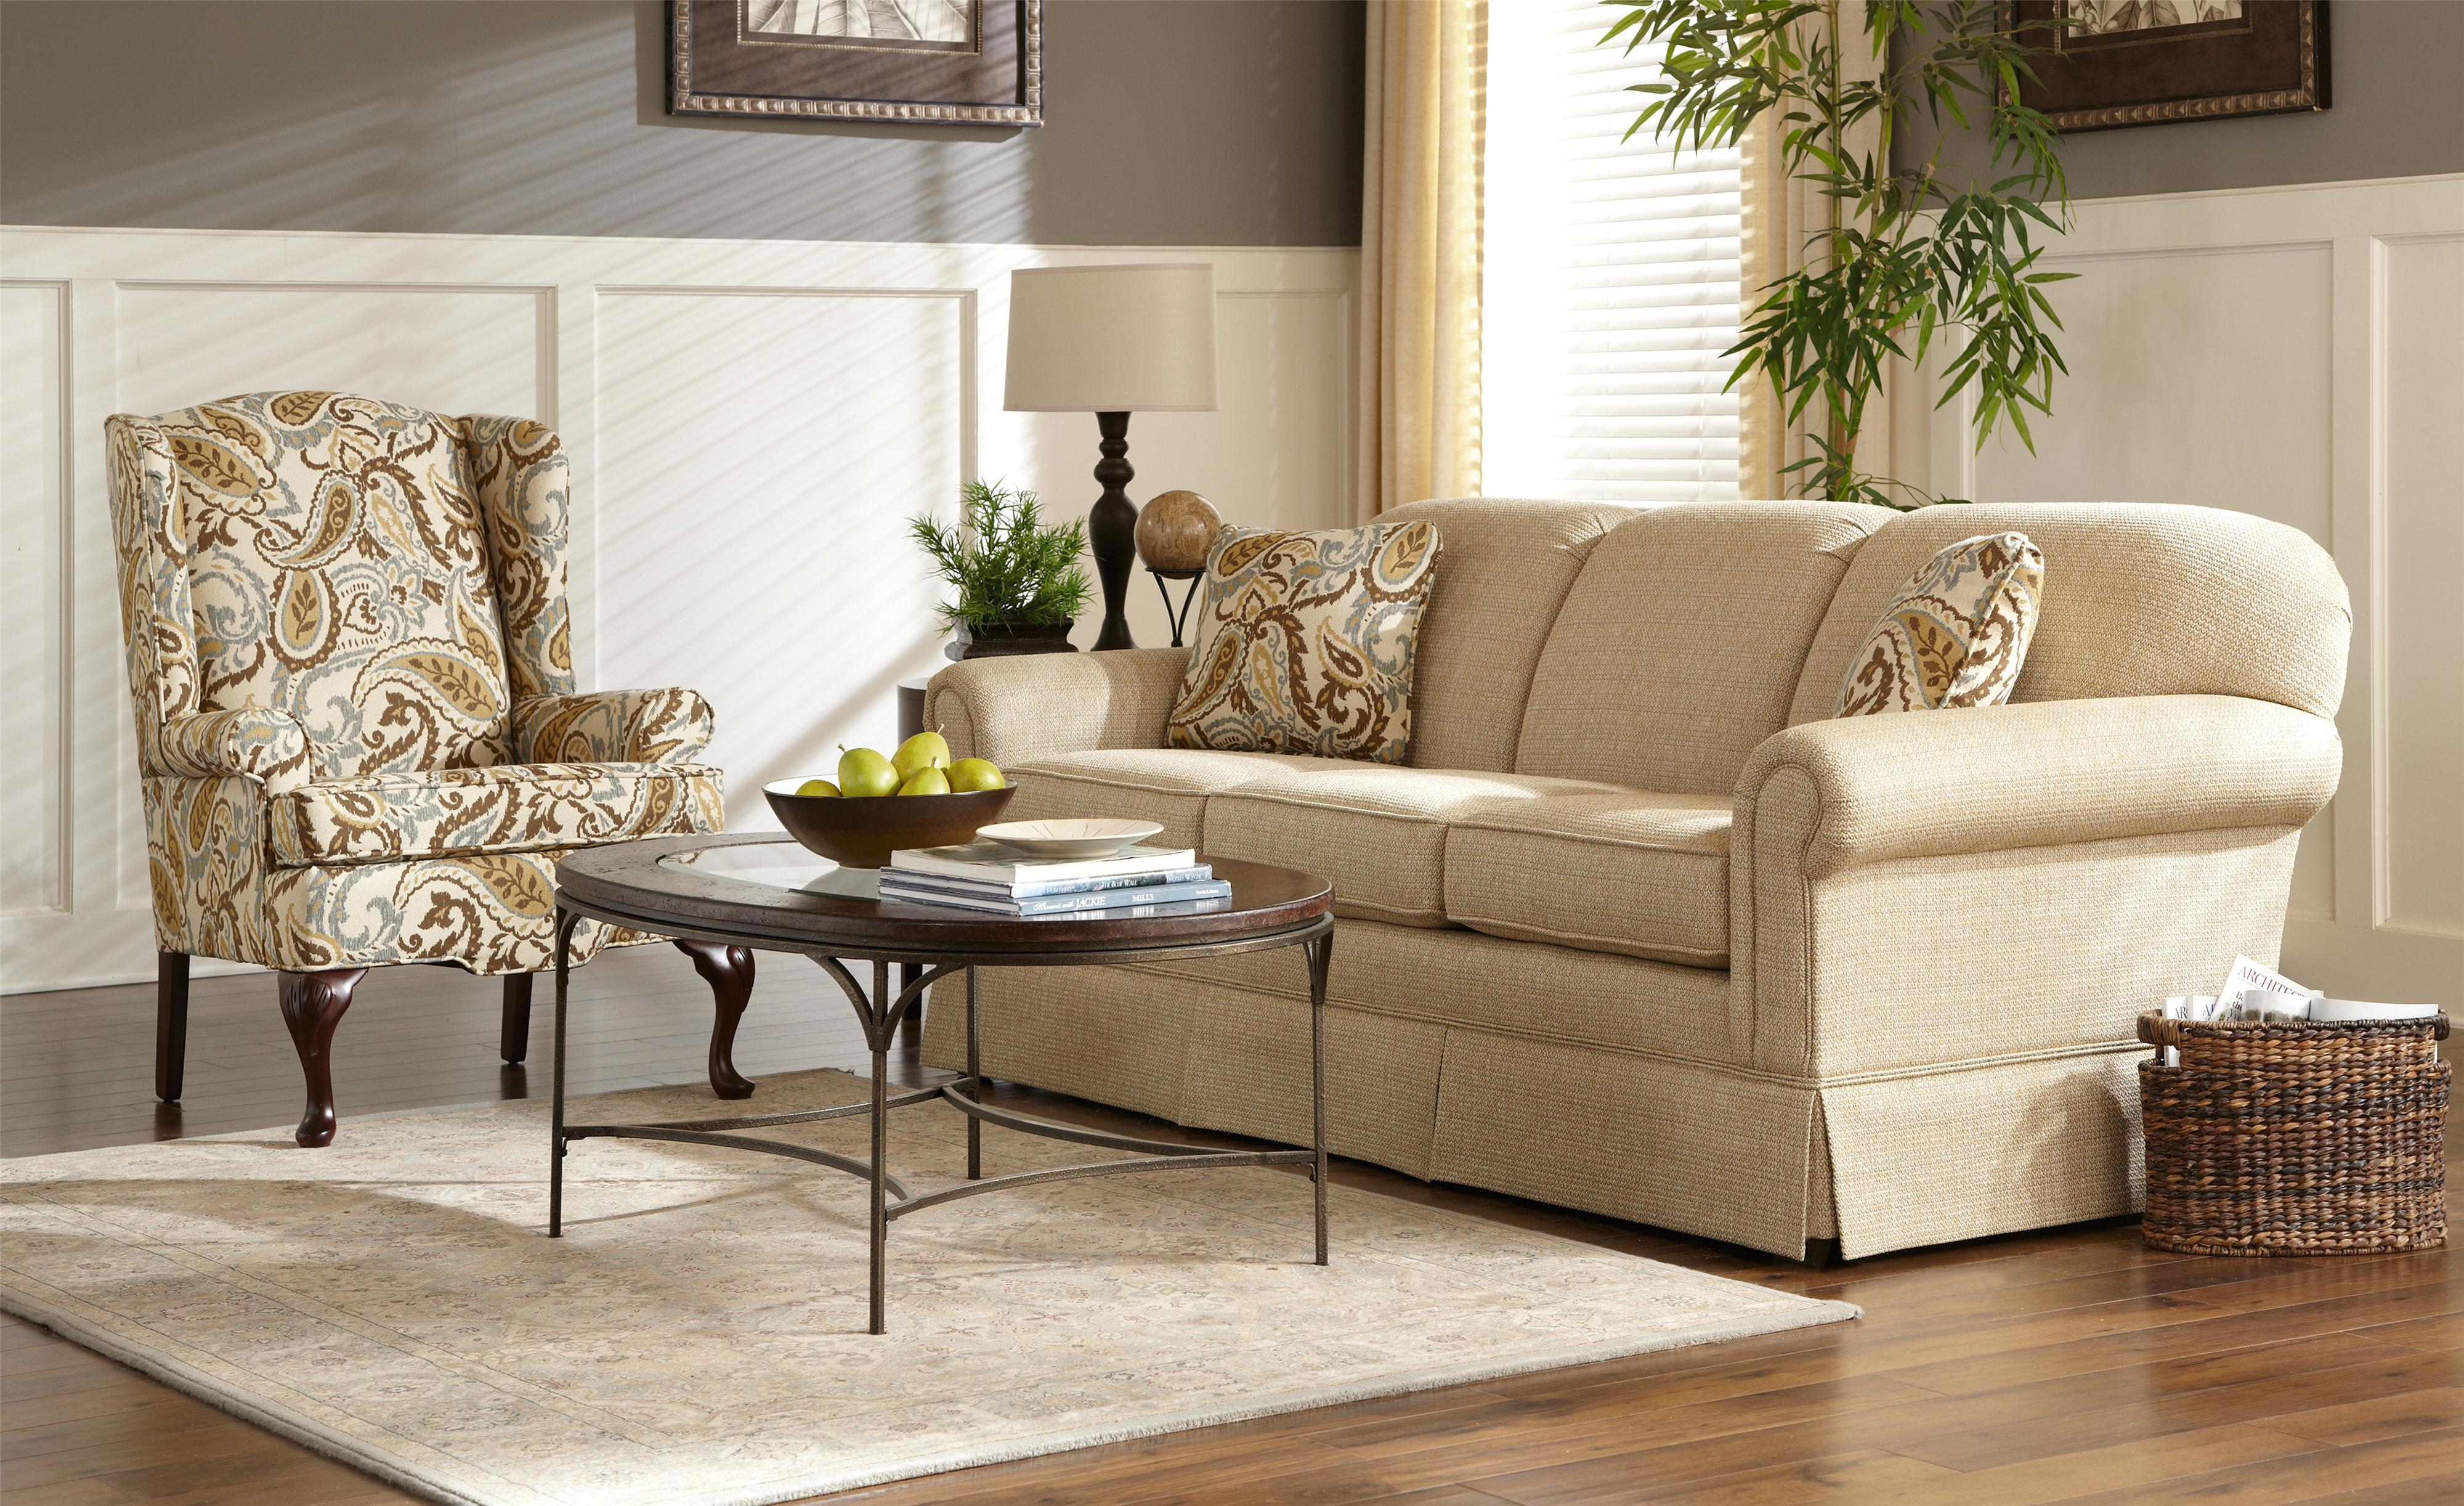 Craftmaster 4200 4200 68 traditional stationary sleeper sofa hudson 39 s furniture sleeper sofas for Encore home designs by craftmaster